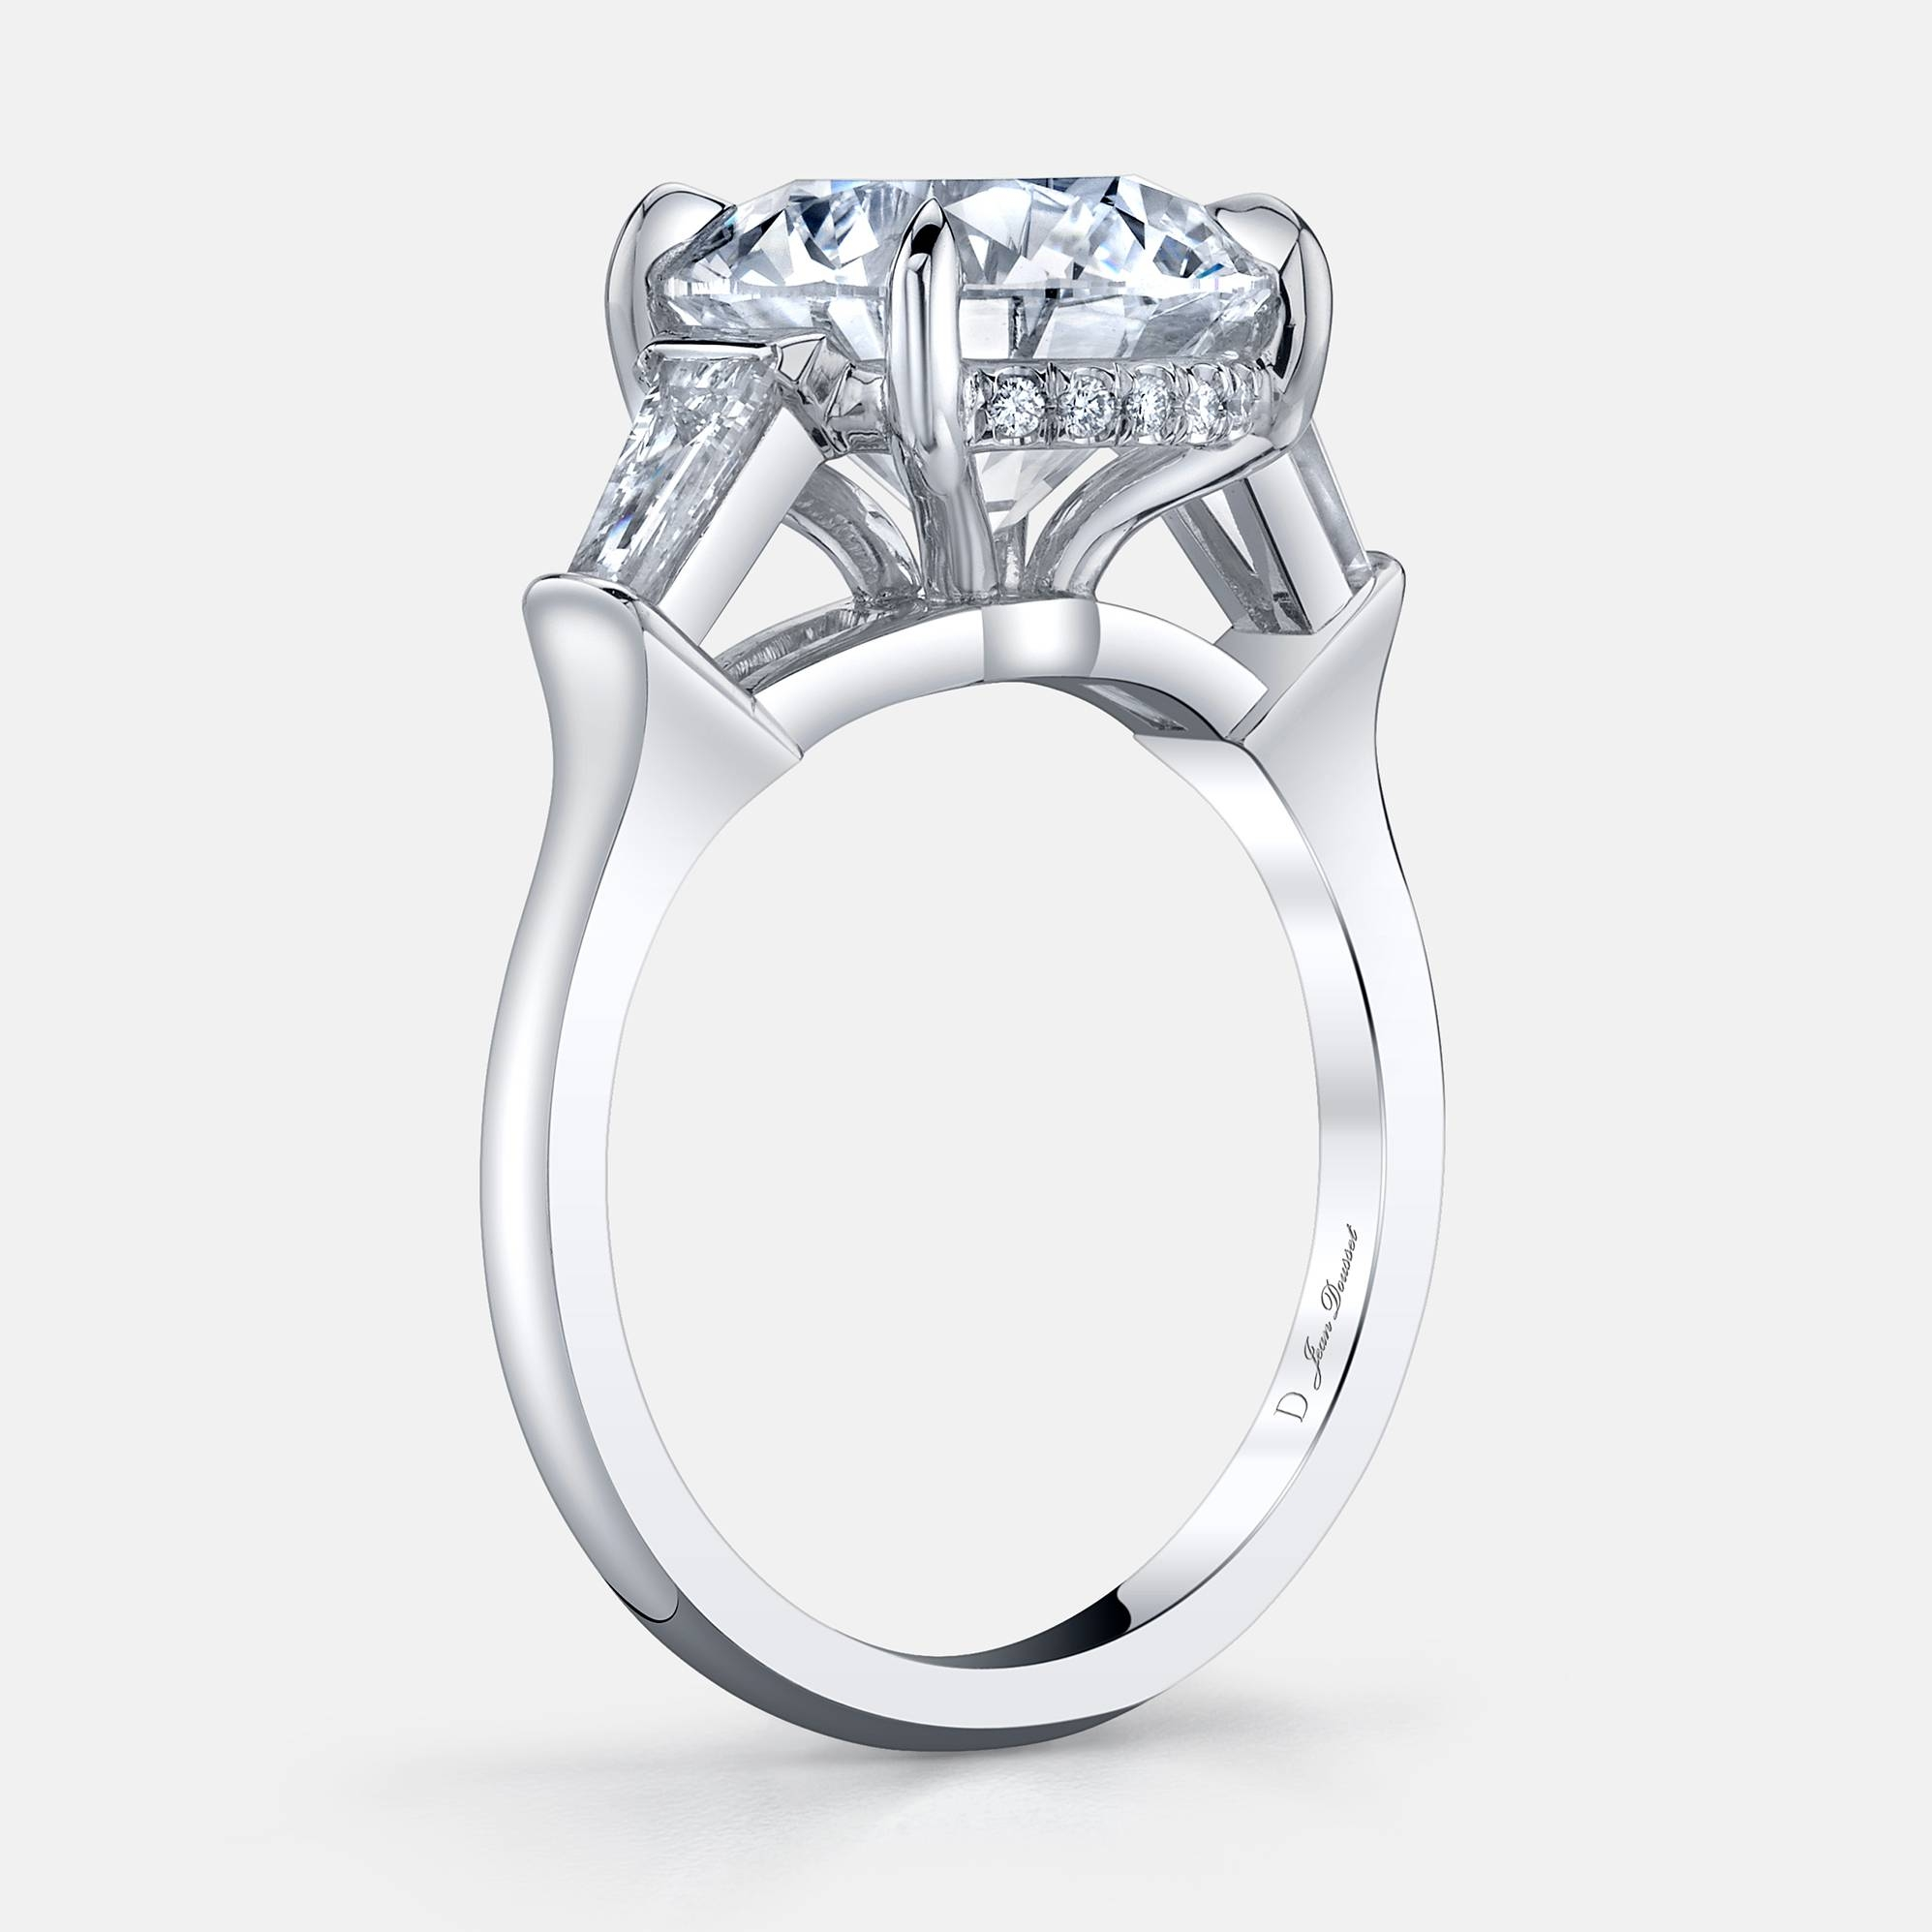 Custom Rings – Handcrafted Diamond Engagement Rings Within Custom Engagement Rings (View 10 of 15)